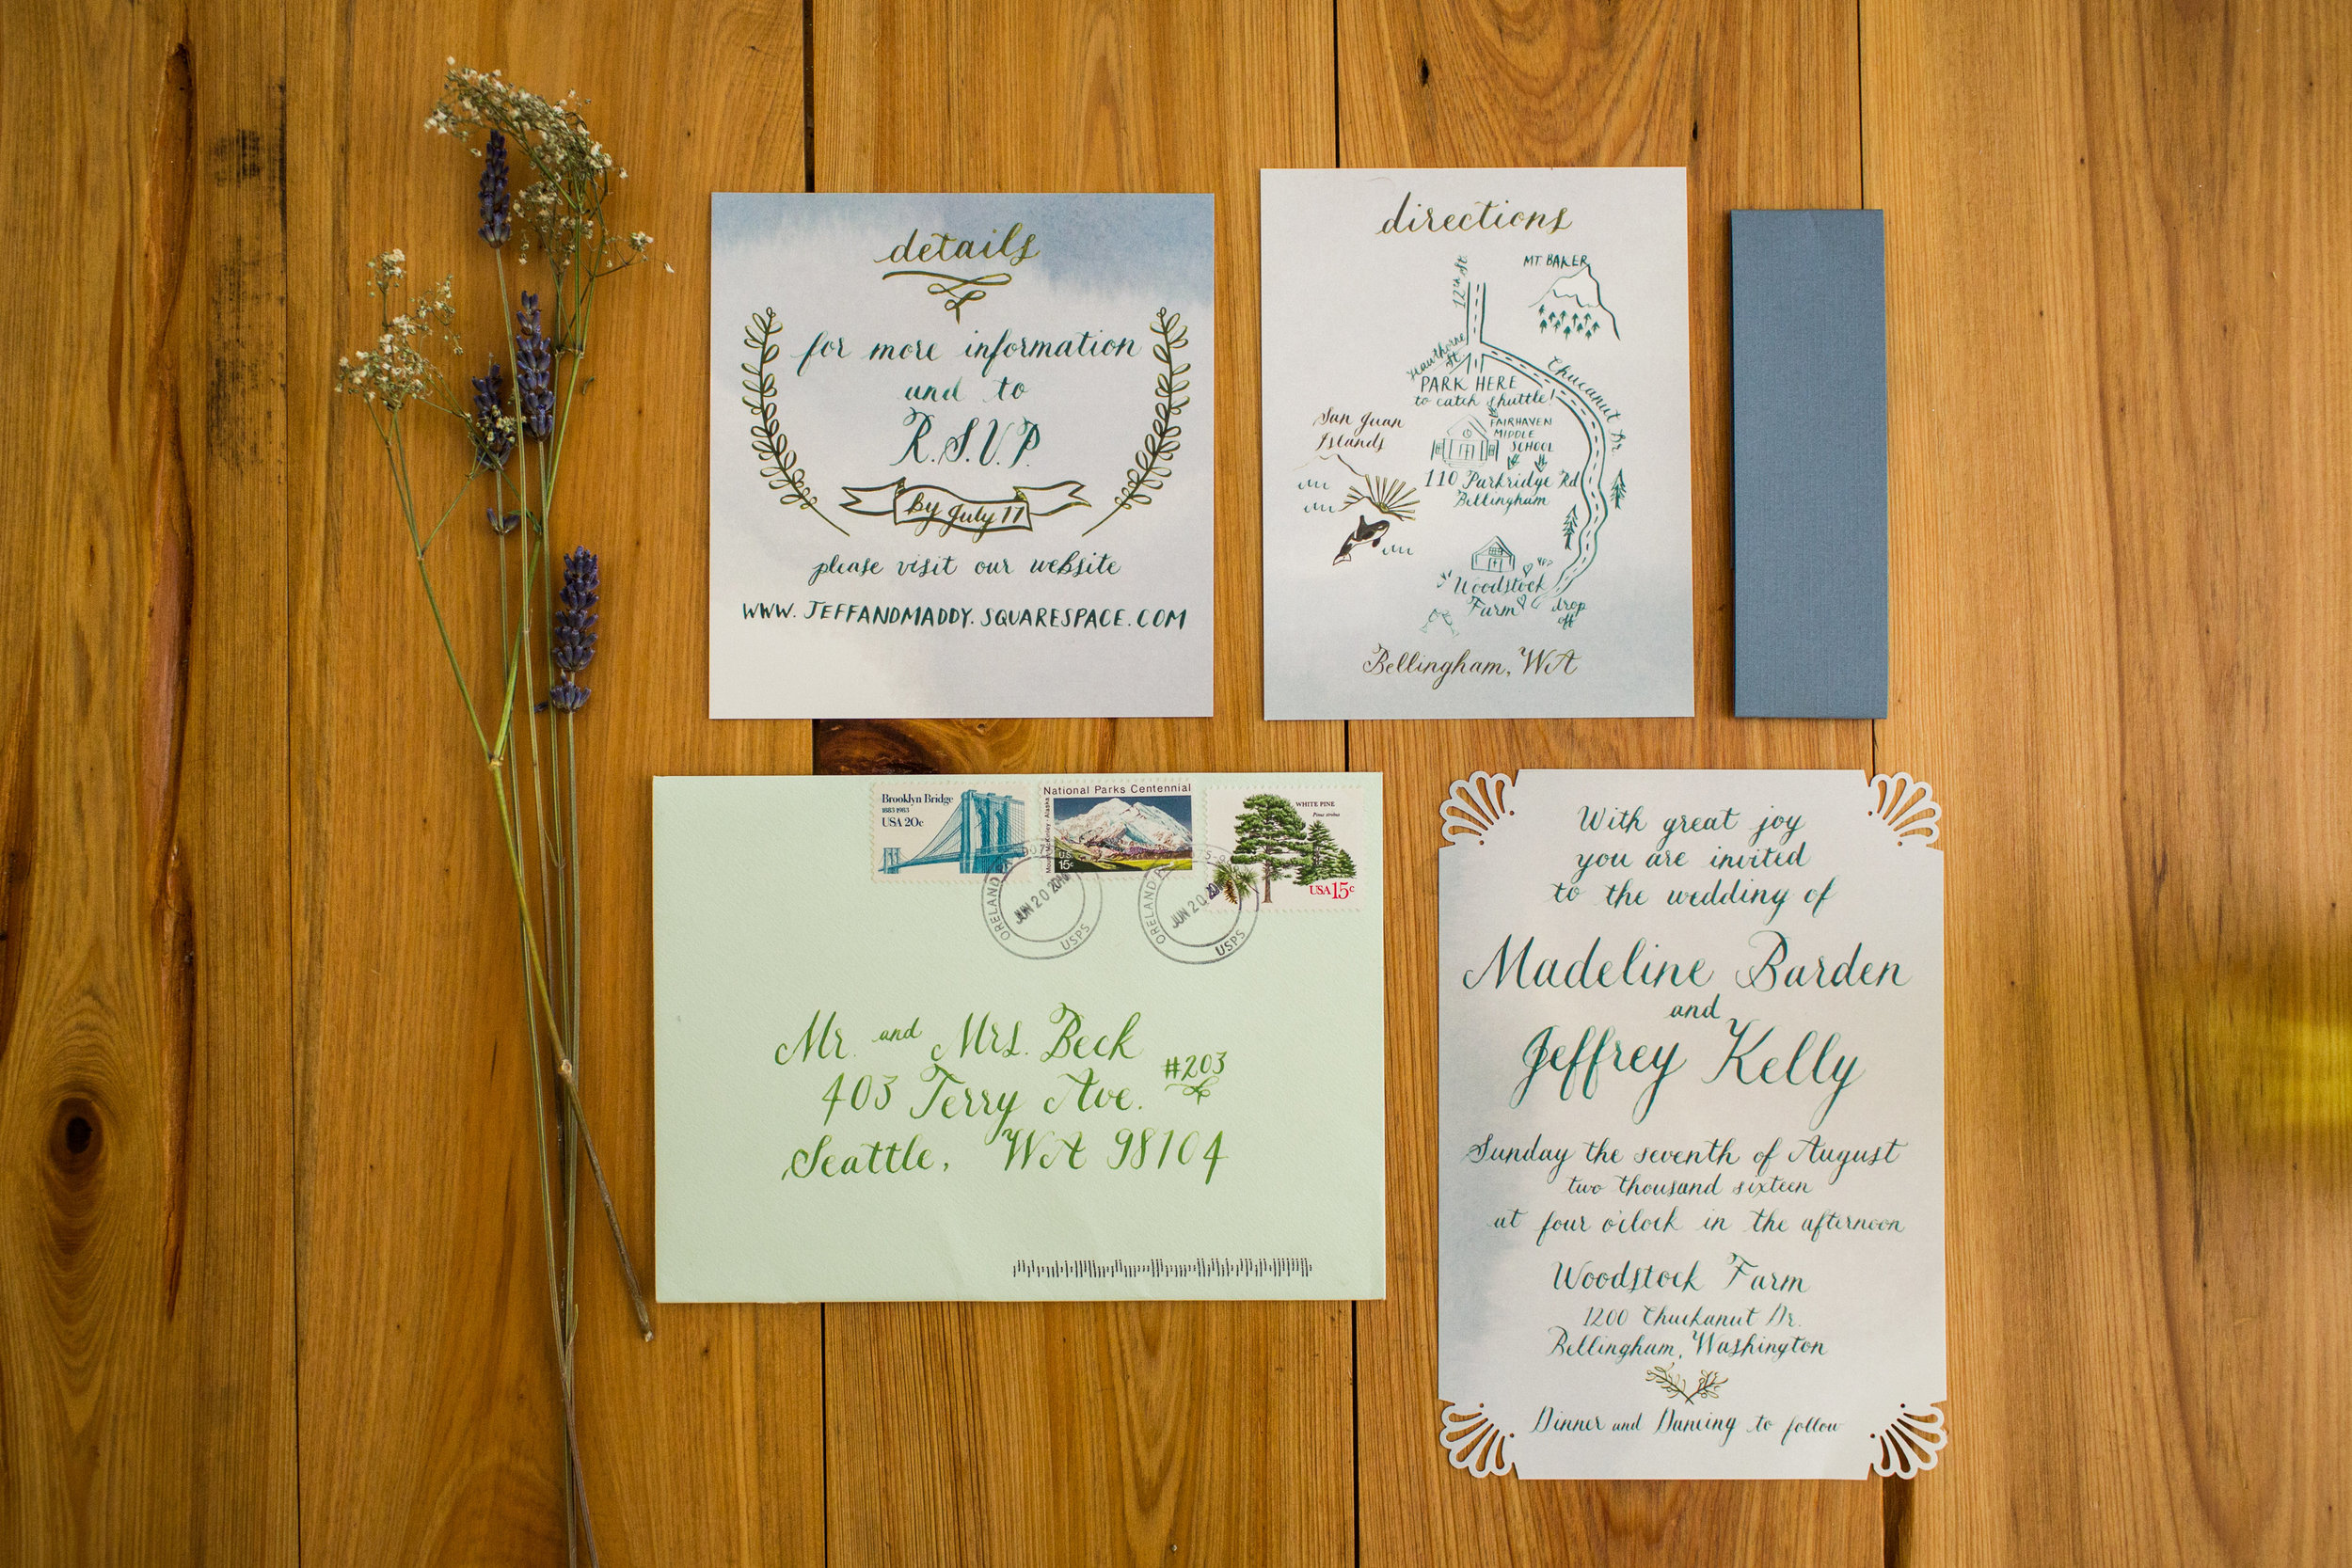 A peek at our wedding stationery - my calligraphy has really grown in a year! Photo by Char Beck.